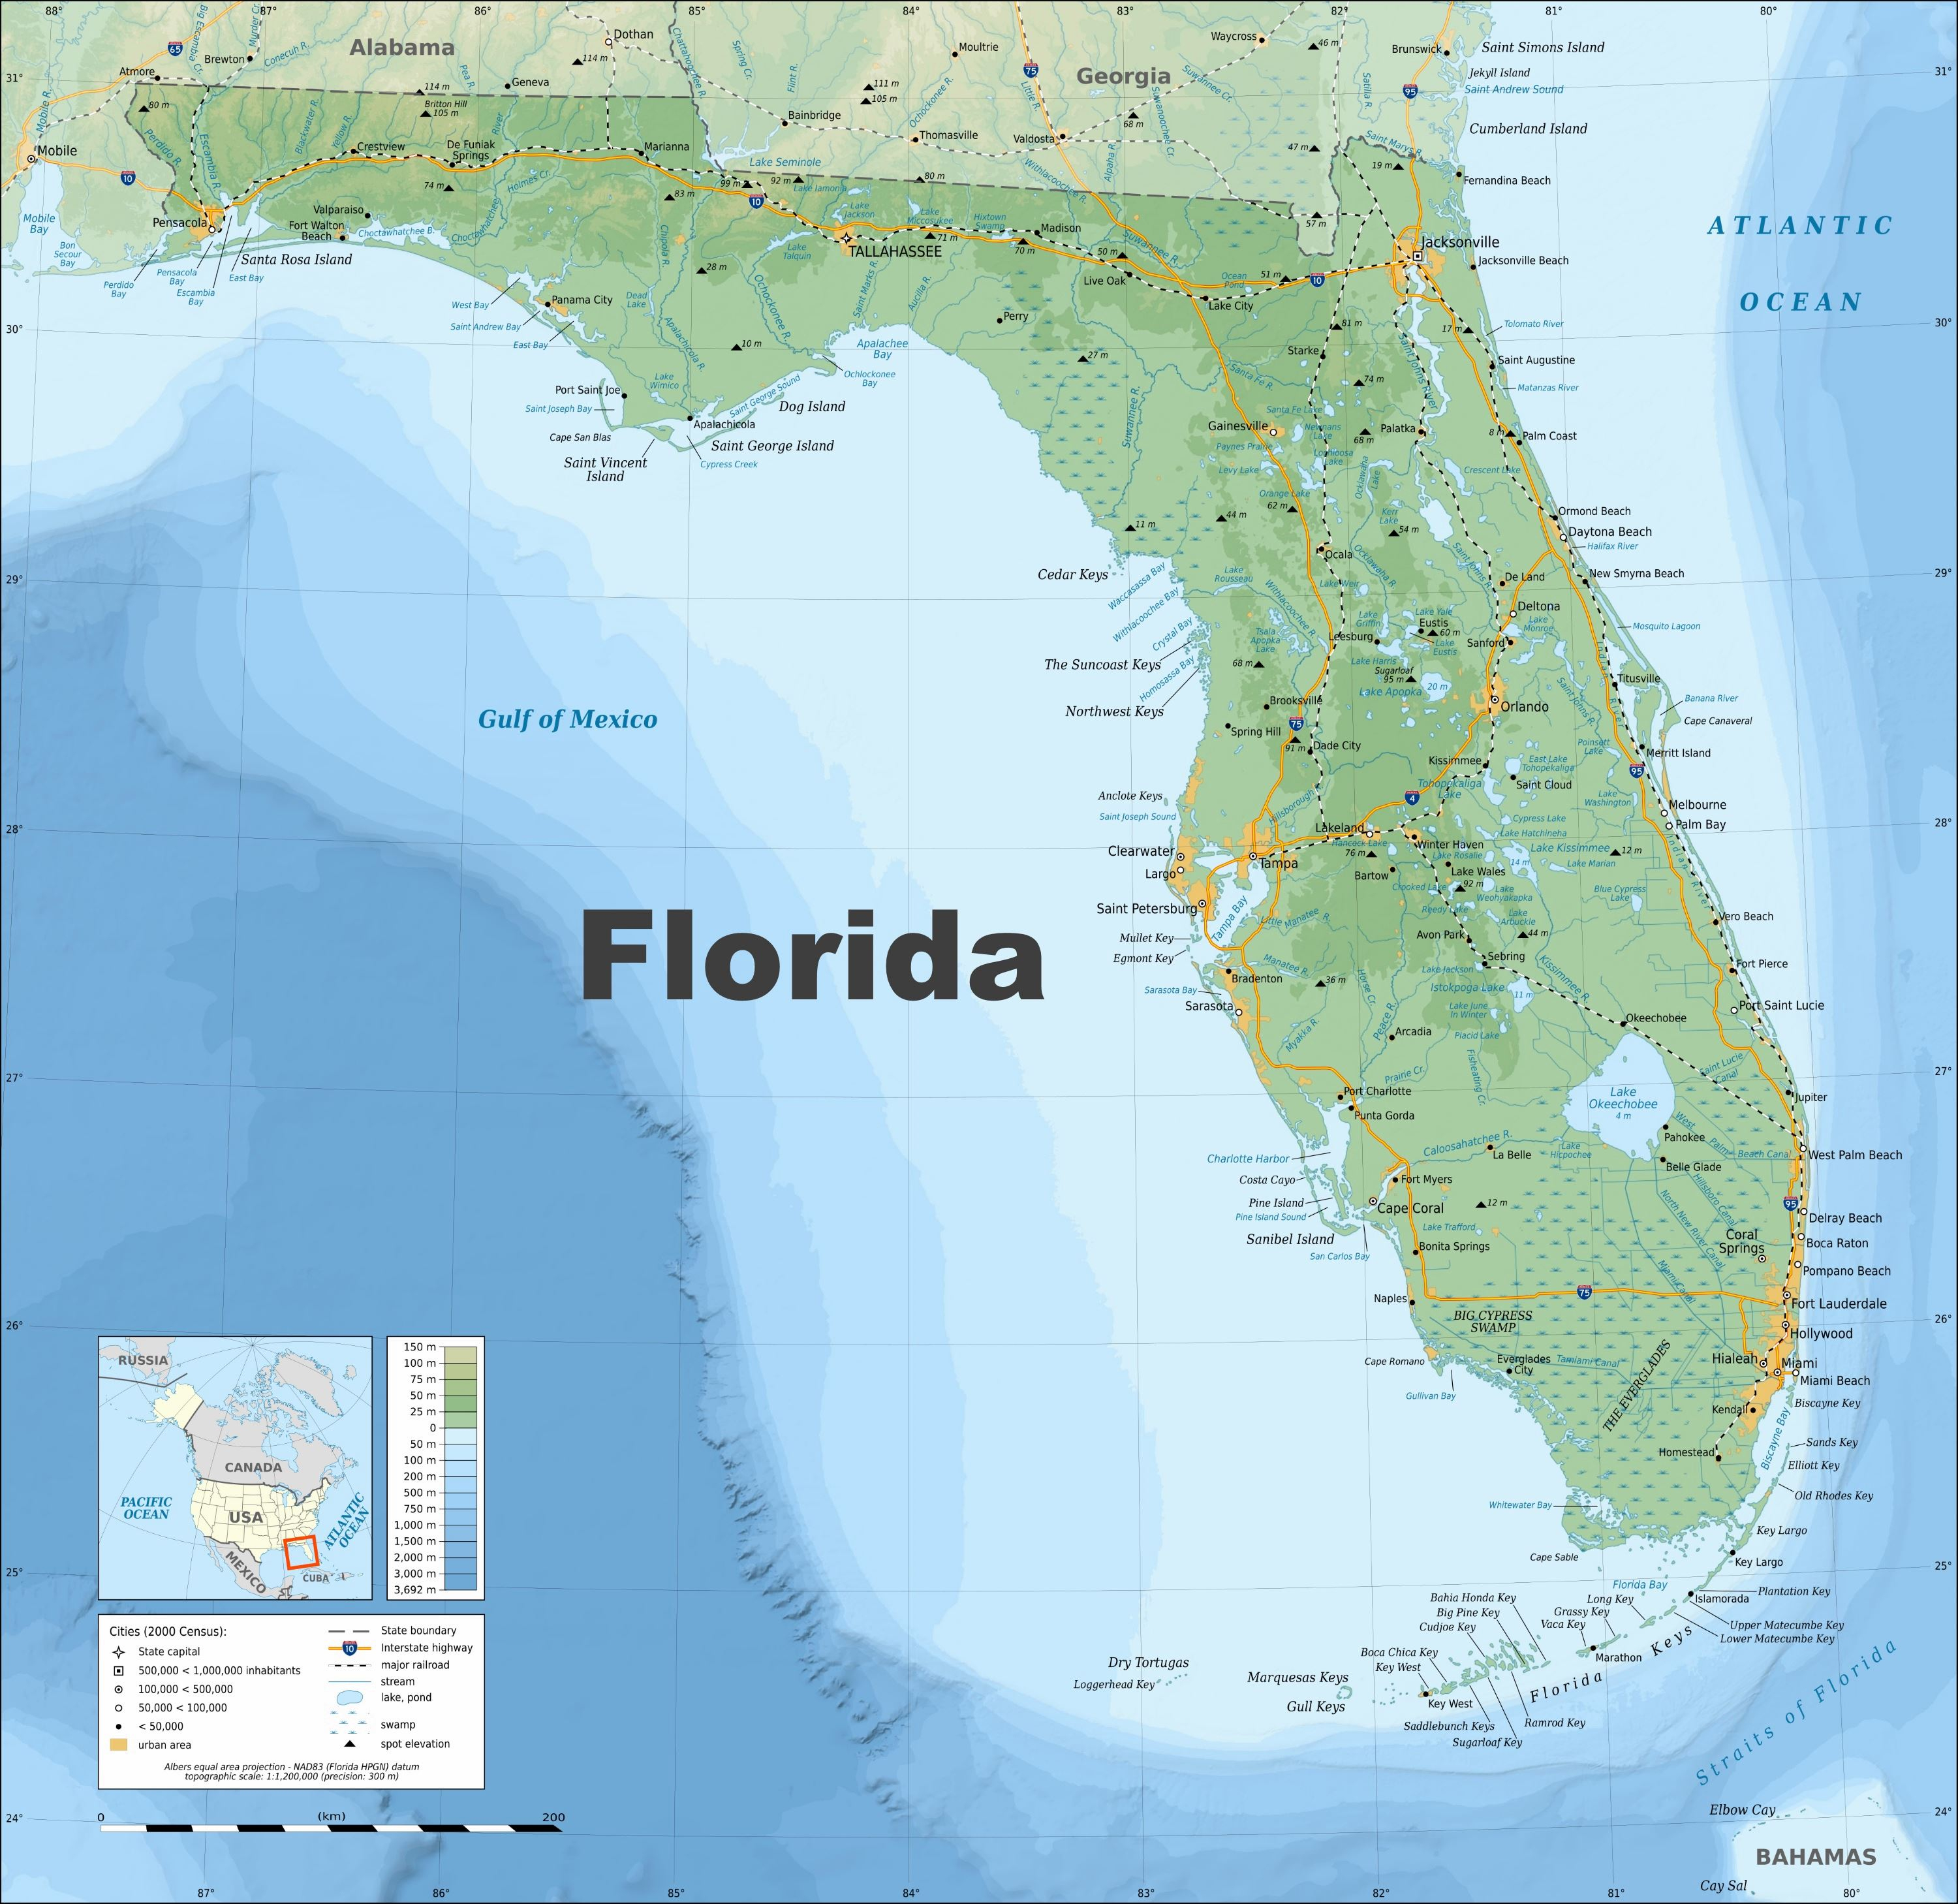 Large Florida Maps For Free Download And Print | High-Resolution And - Giant Florida Map